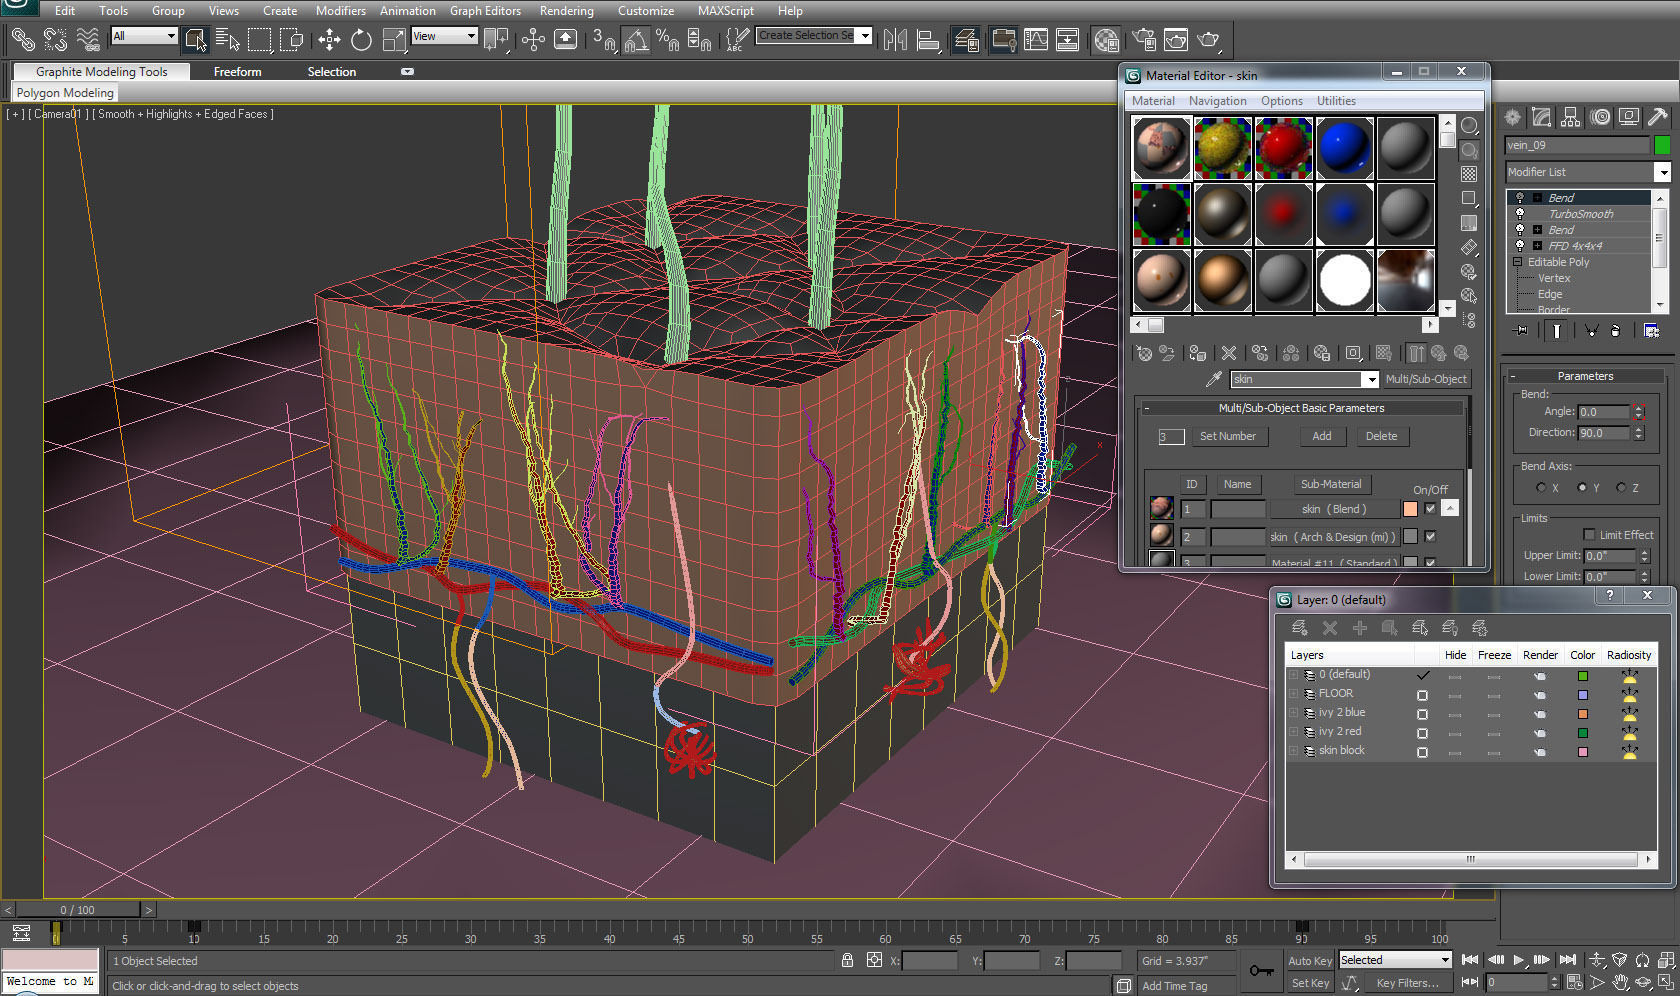 Skin Cross Section 3d Model Animated Rigged Max